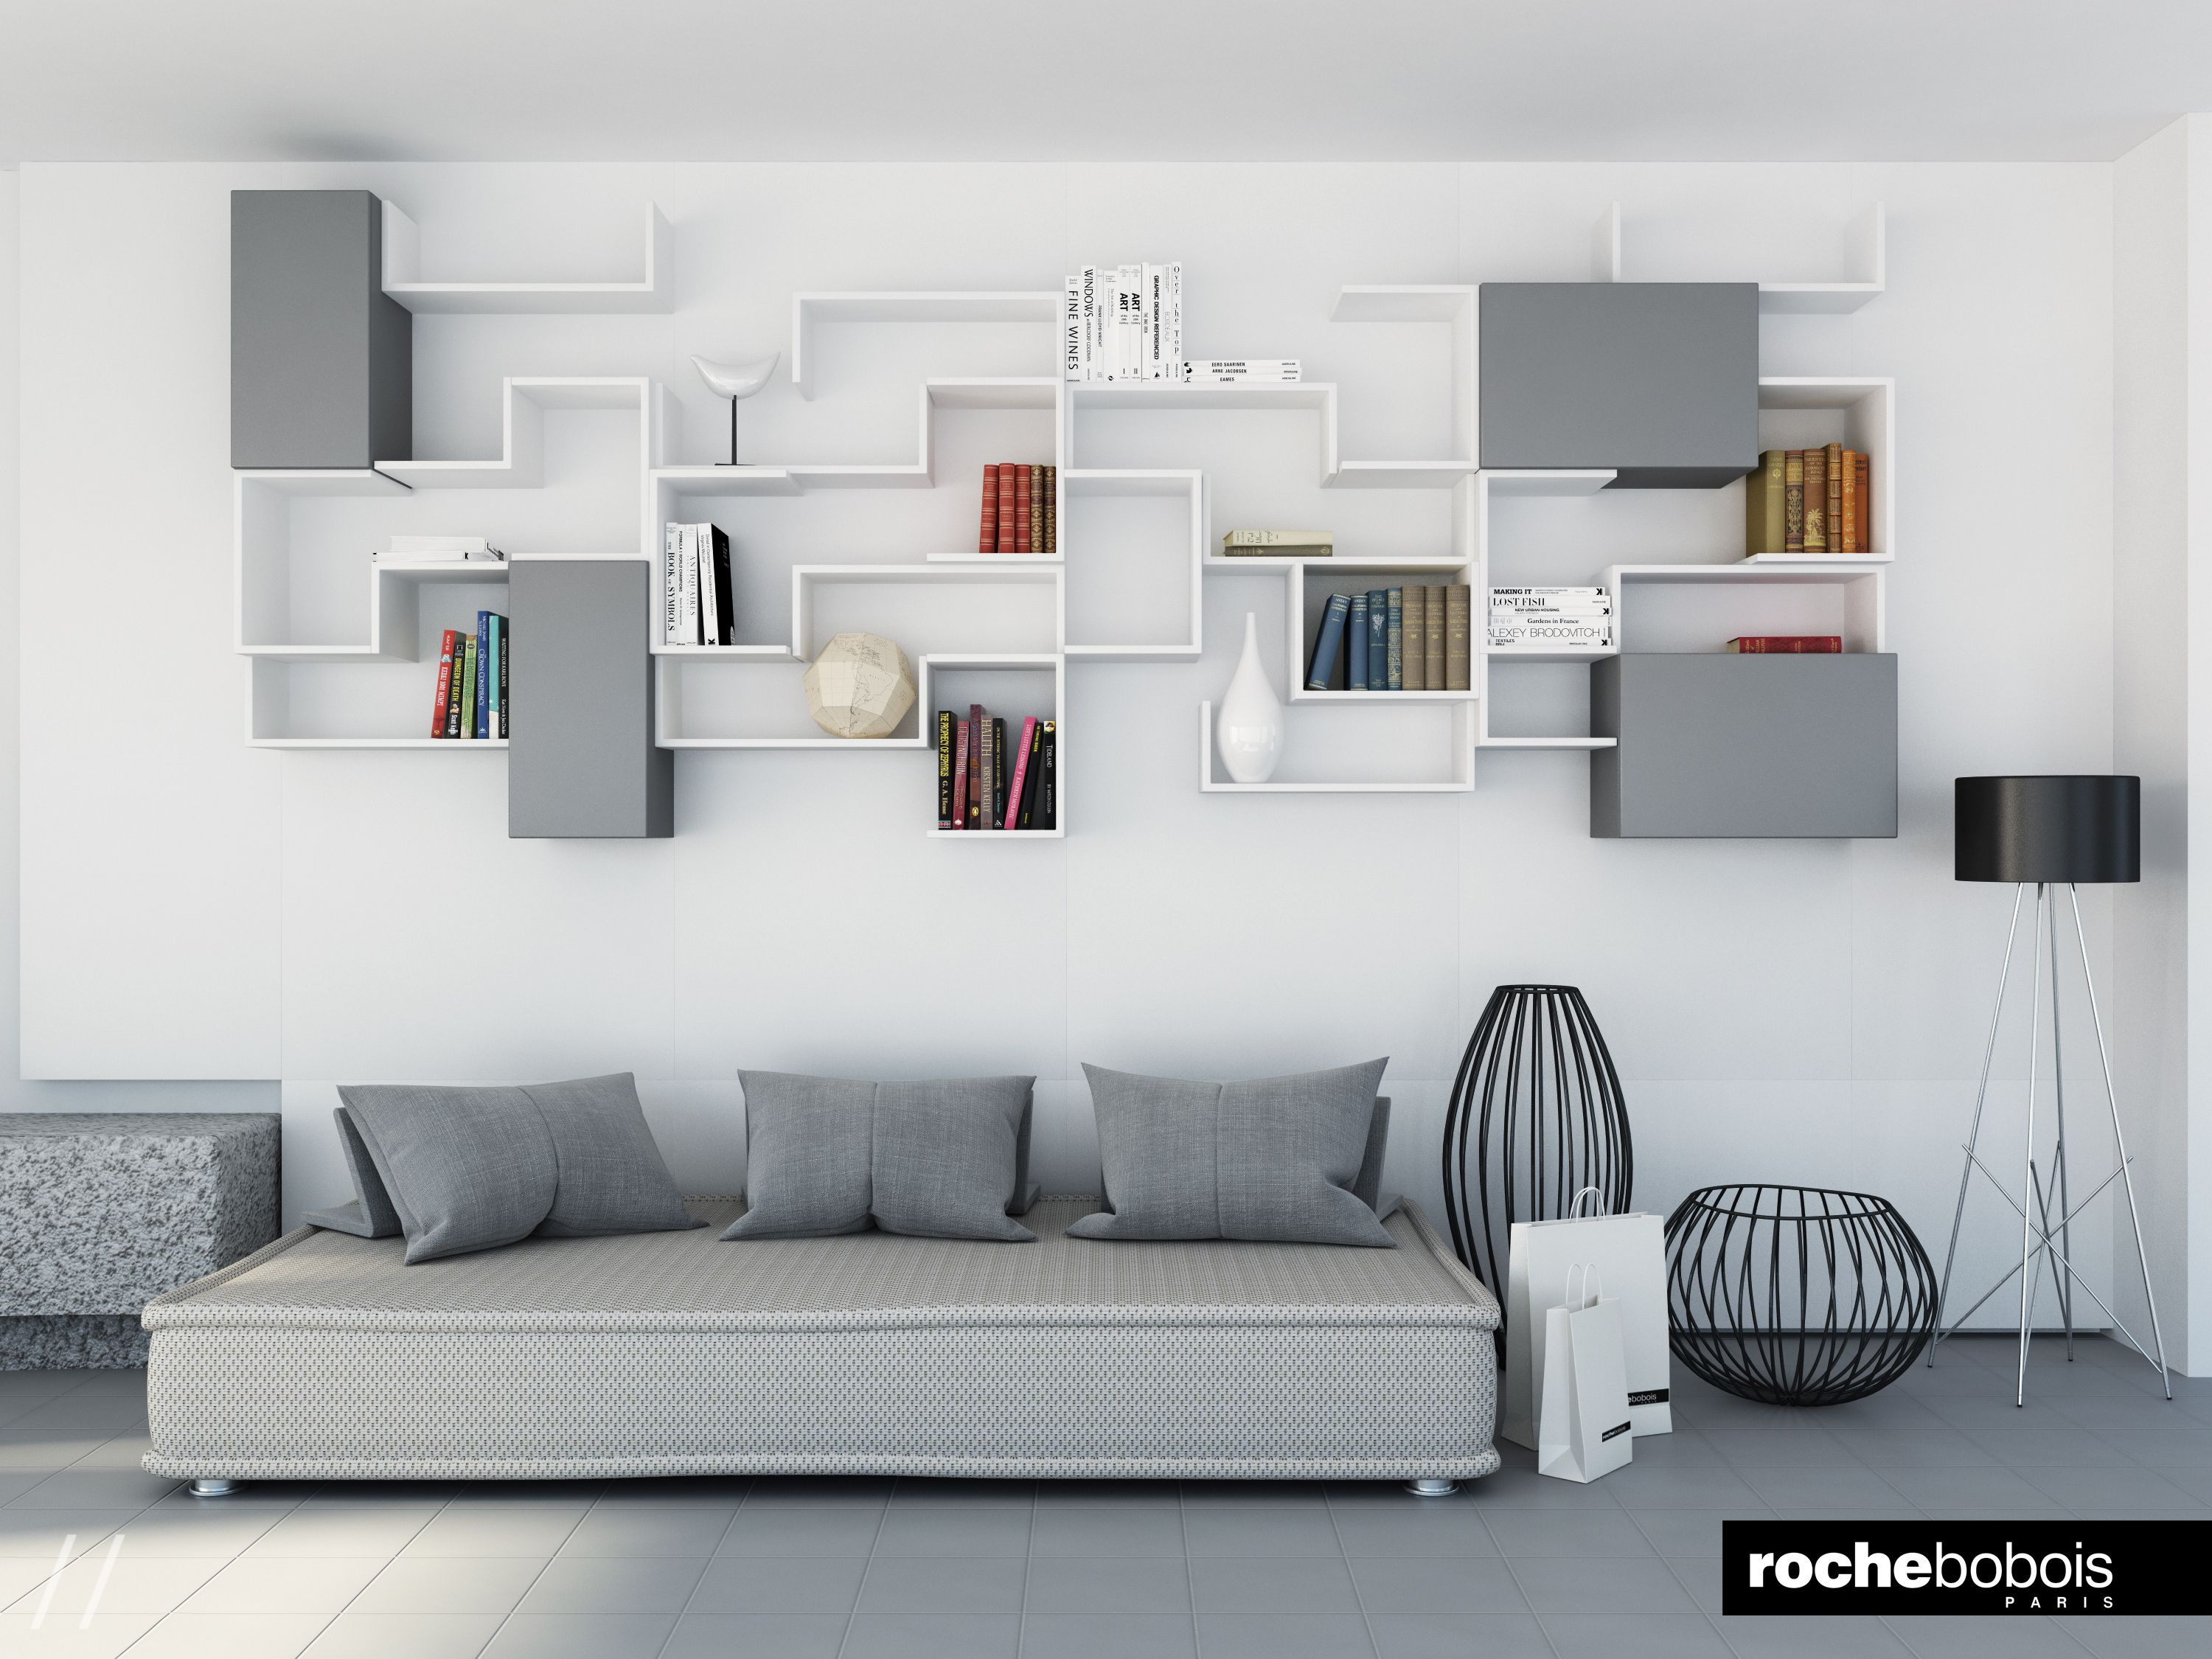 Living Room in toni neutri Canape Sofa Roche Bobois